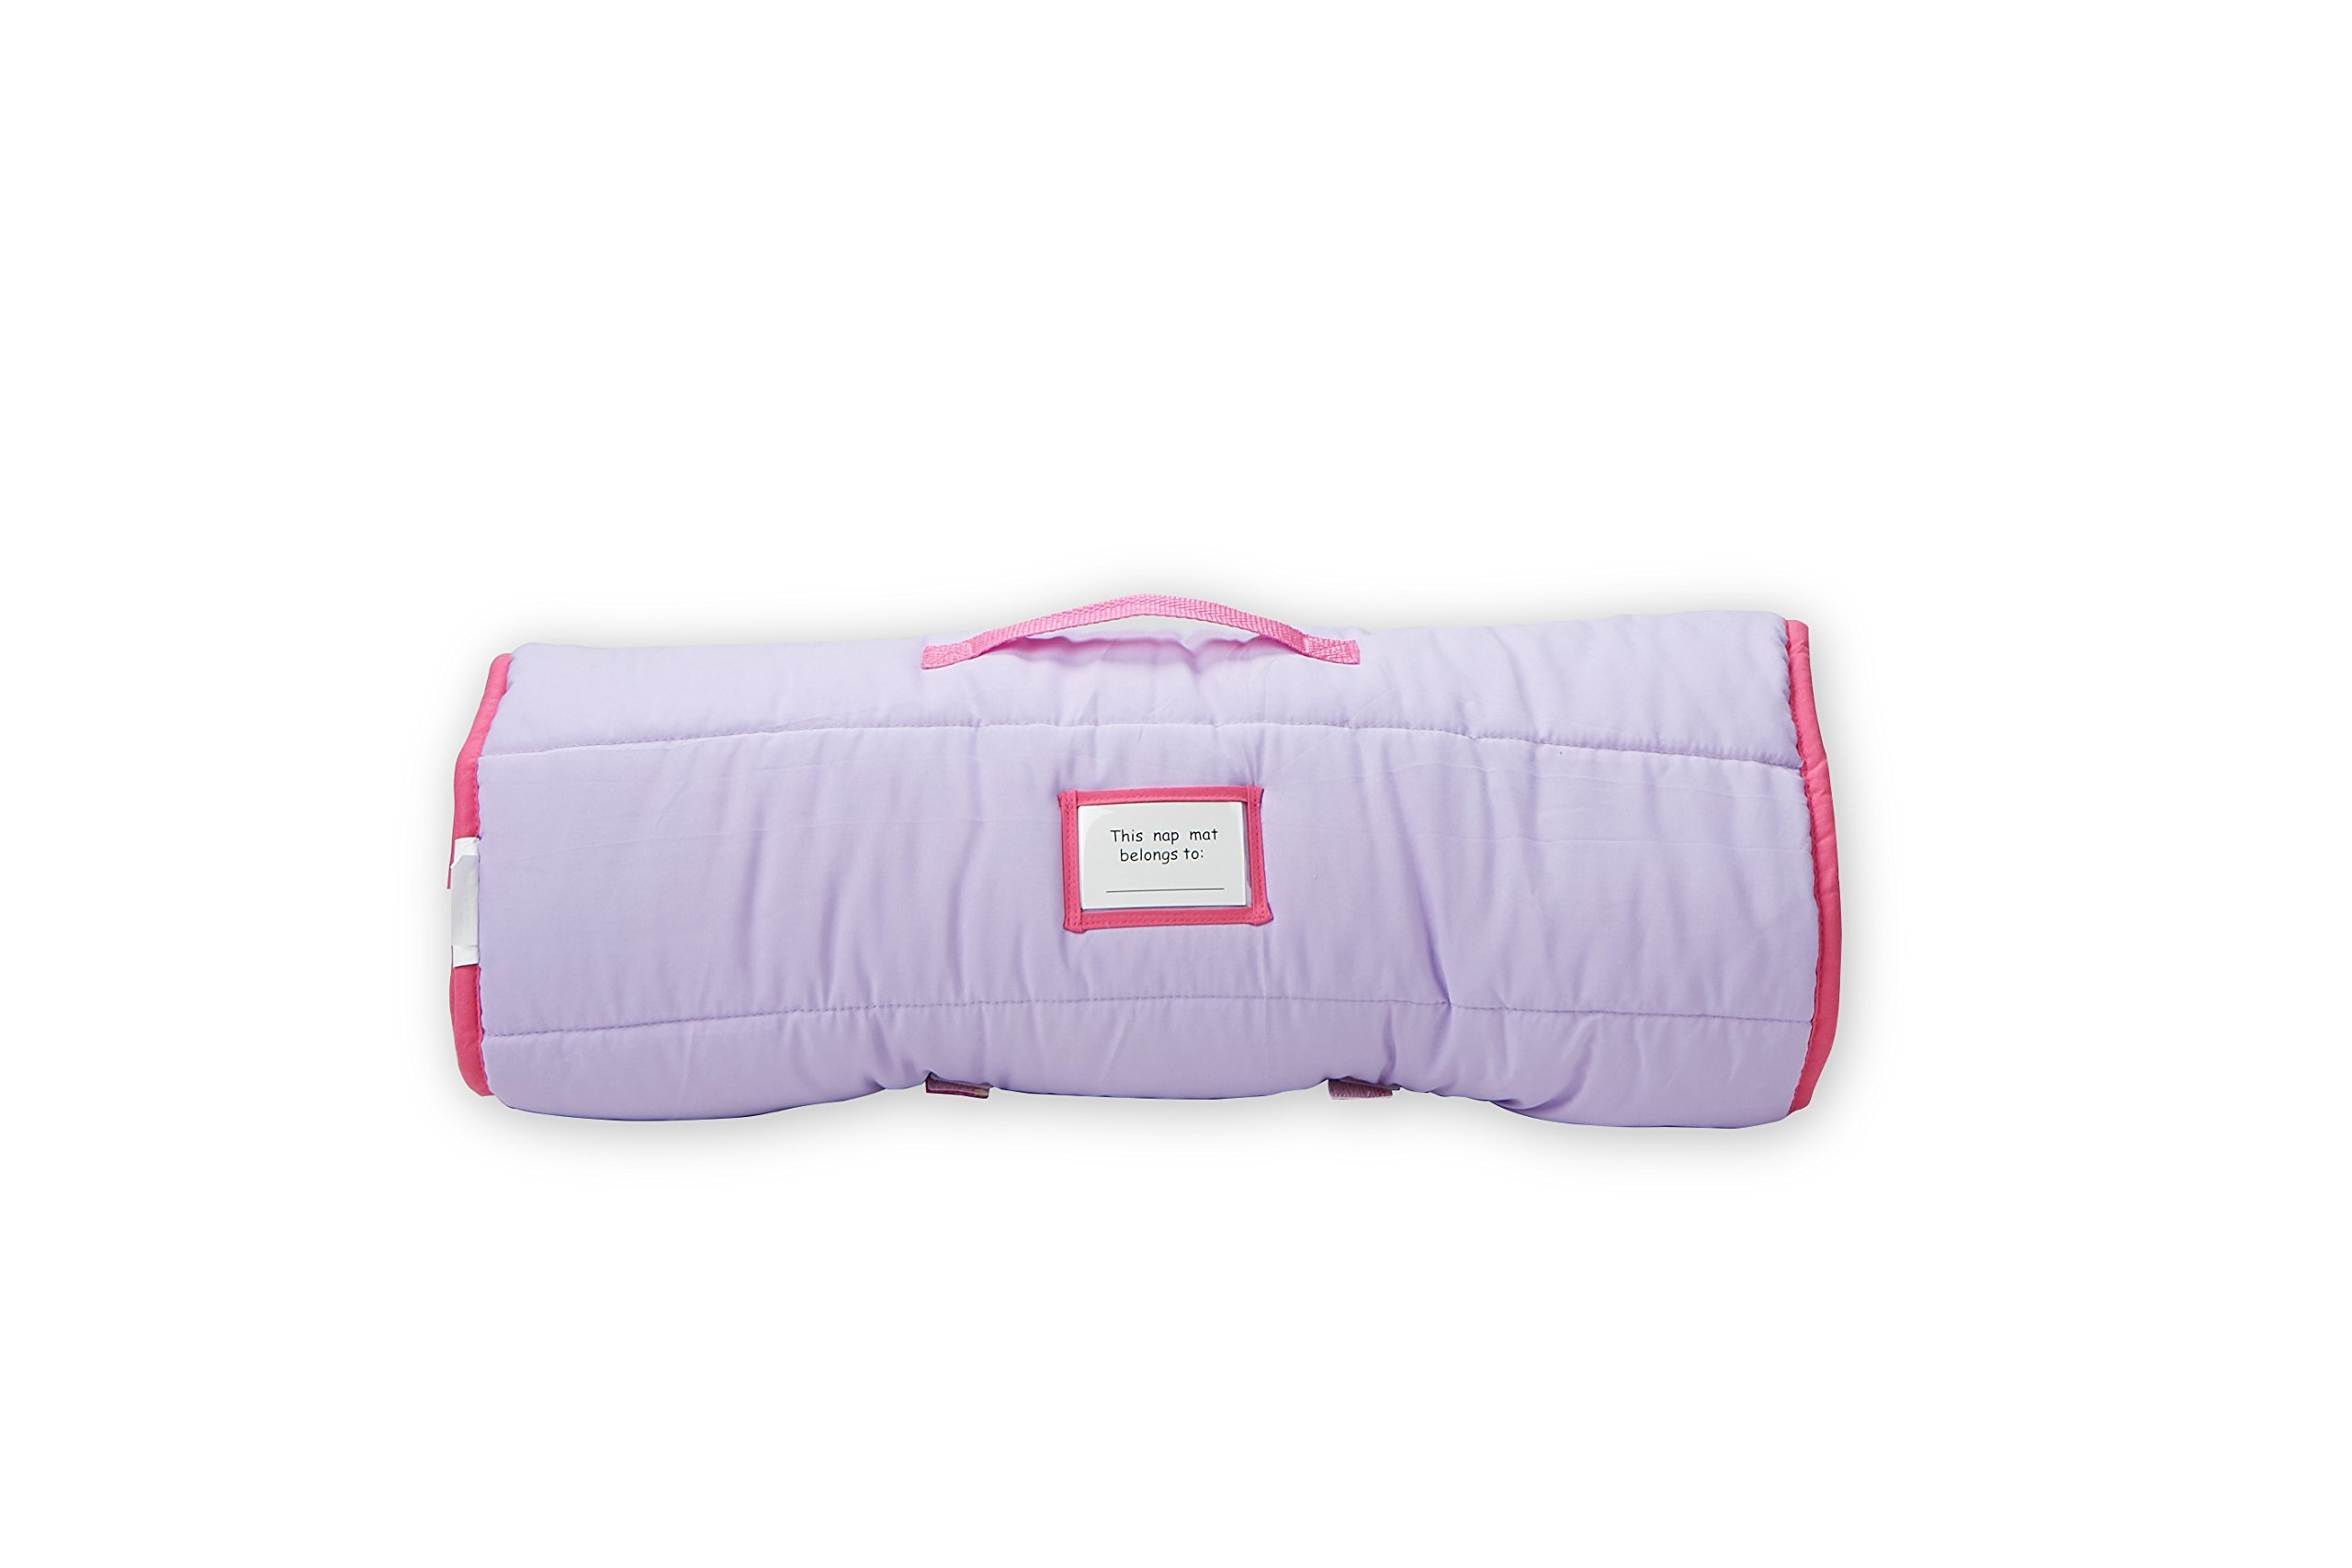 Baby Boom Nap Mat Set - Includes Pillow and Fleece Blanket – Great for Boys and Girls Napping at Daycare, Preschool, Or Kindergarten - Fits Sleeping Toddlers and Young Children - Kid Friendly Design by Baby Boom (Image #3)